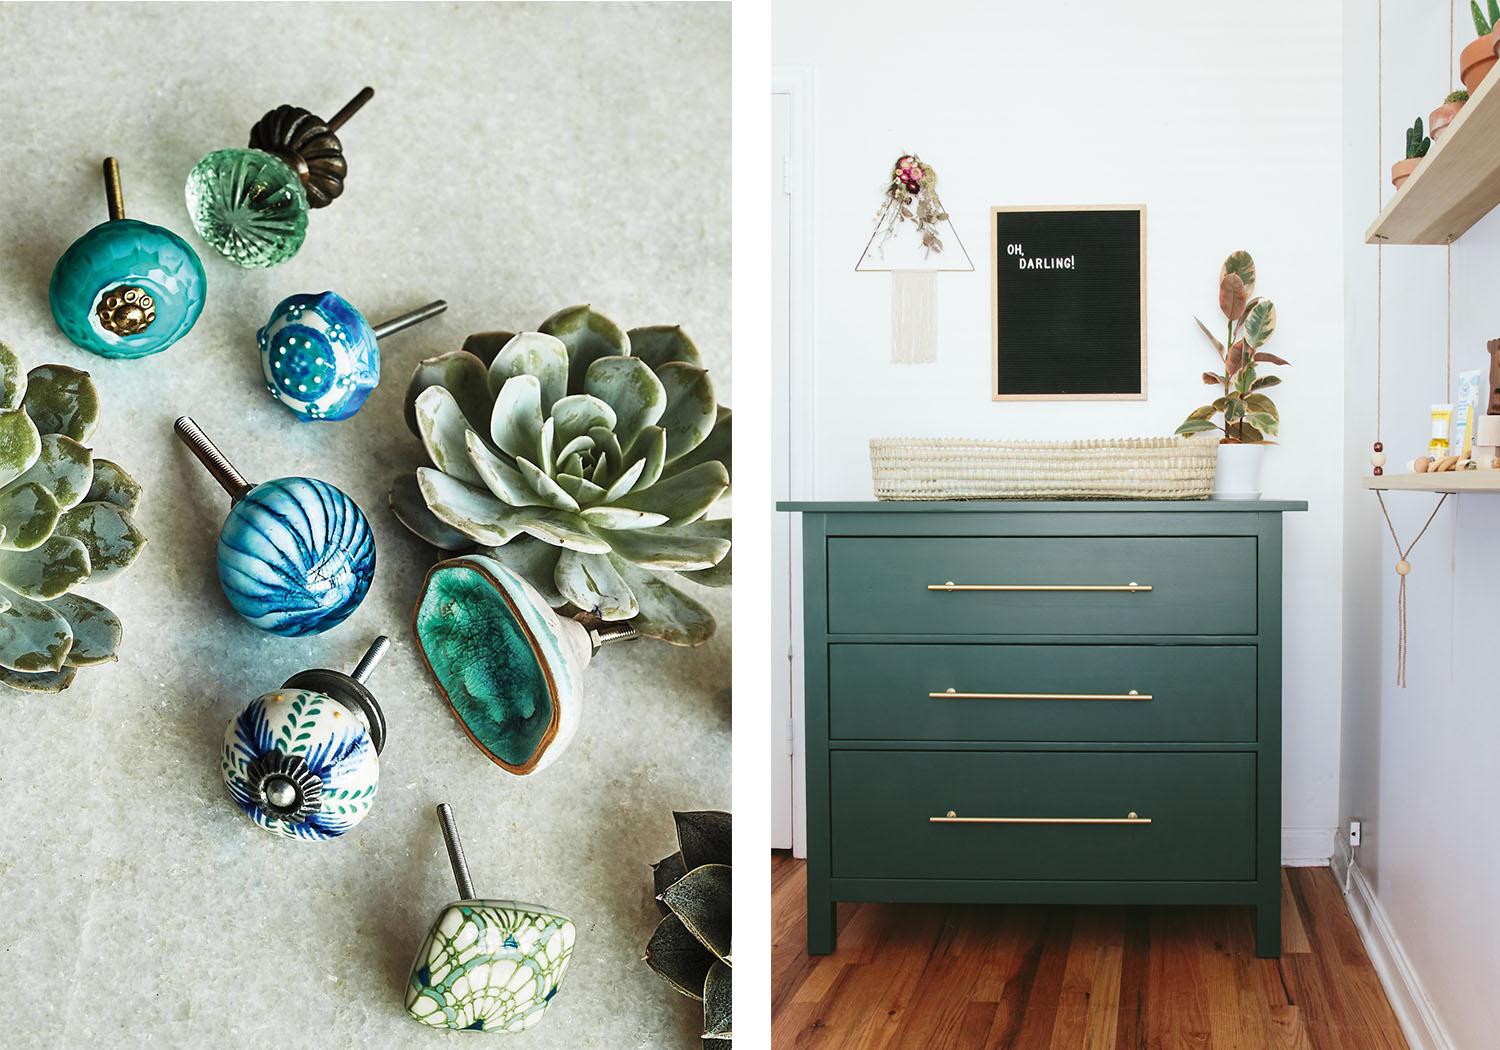 Sparkling blue ocean crater knobs and solid-colored drawers are absolute necessities in a home.